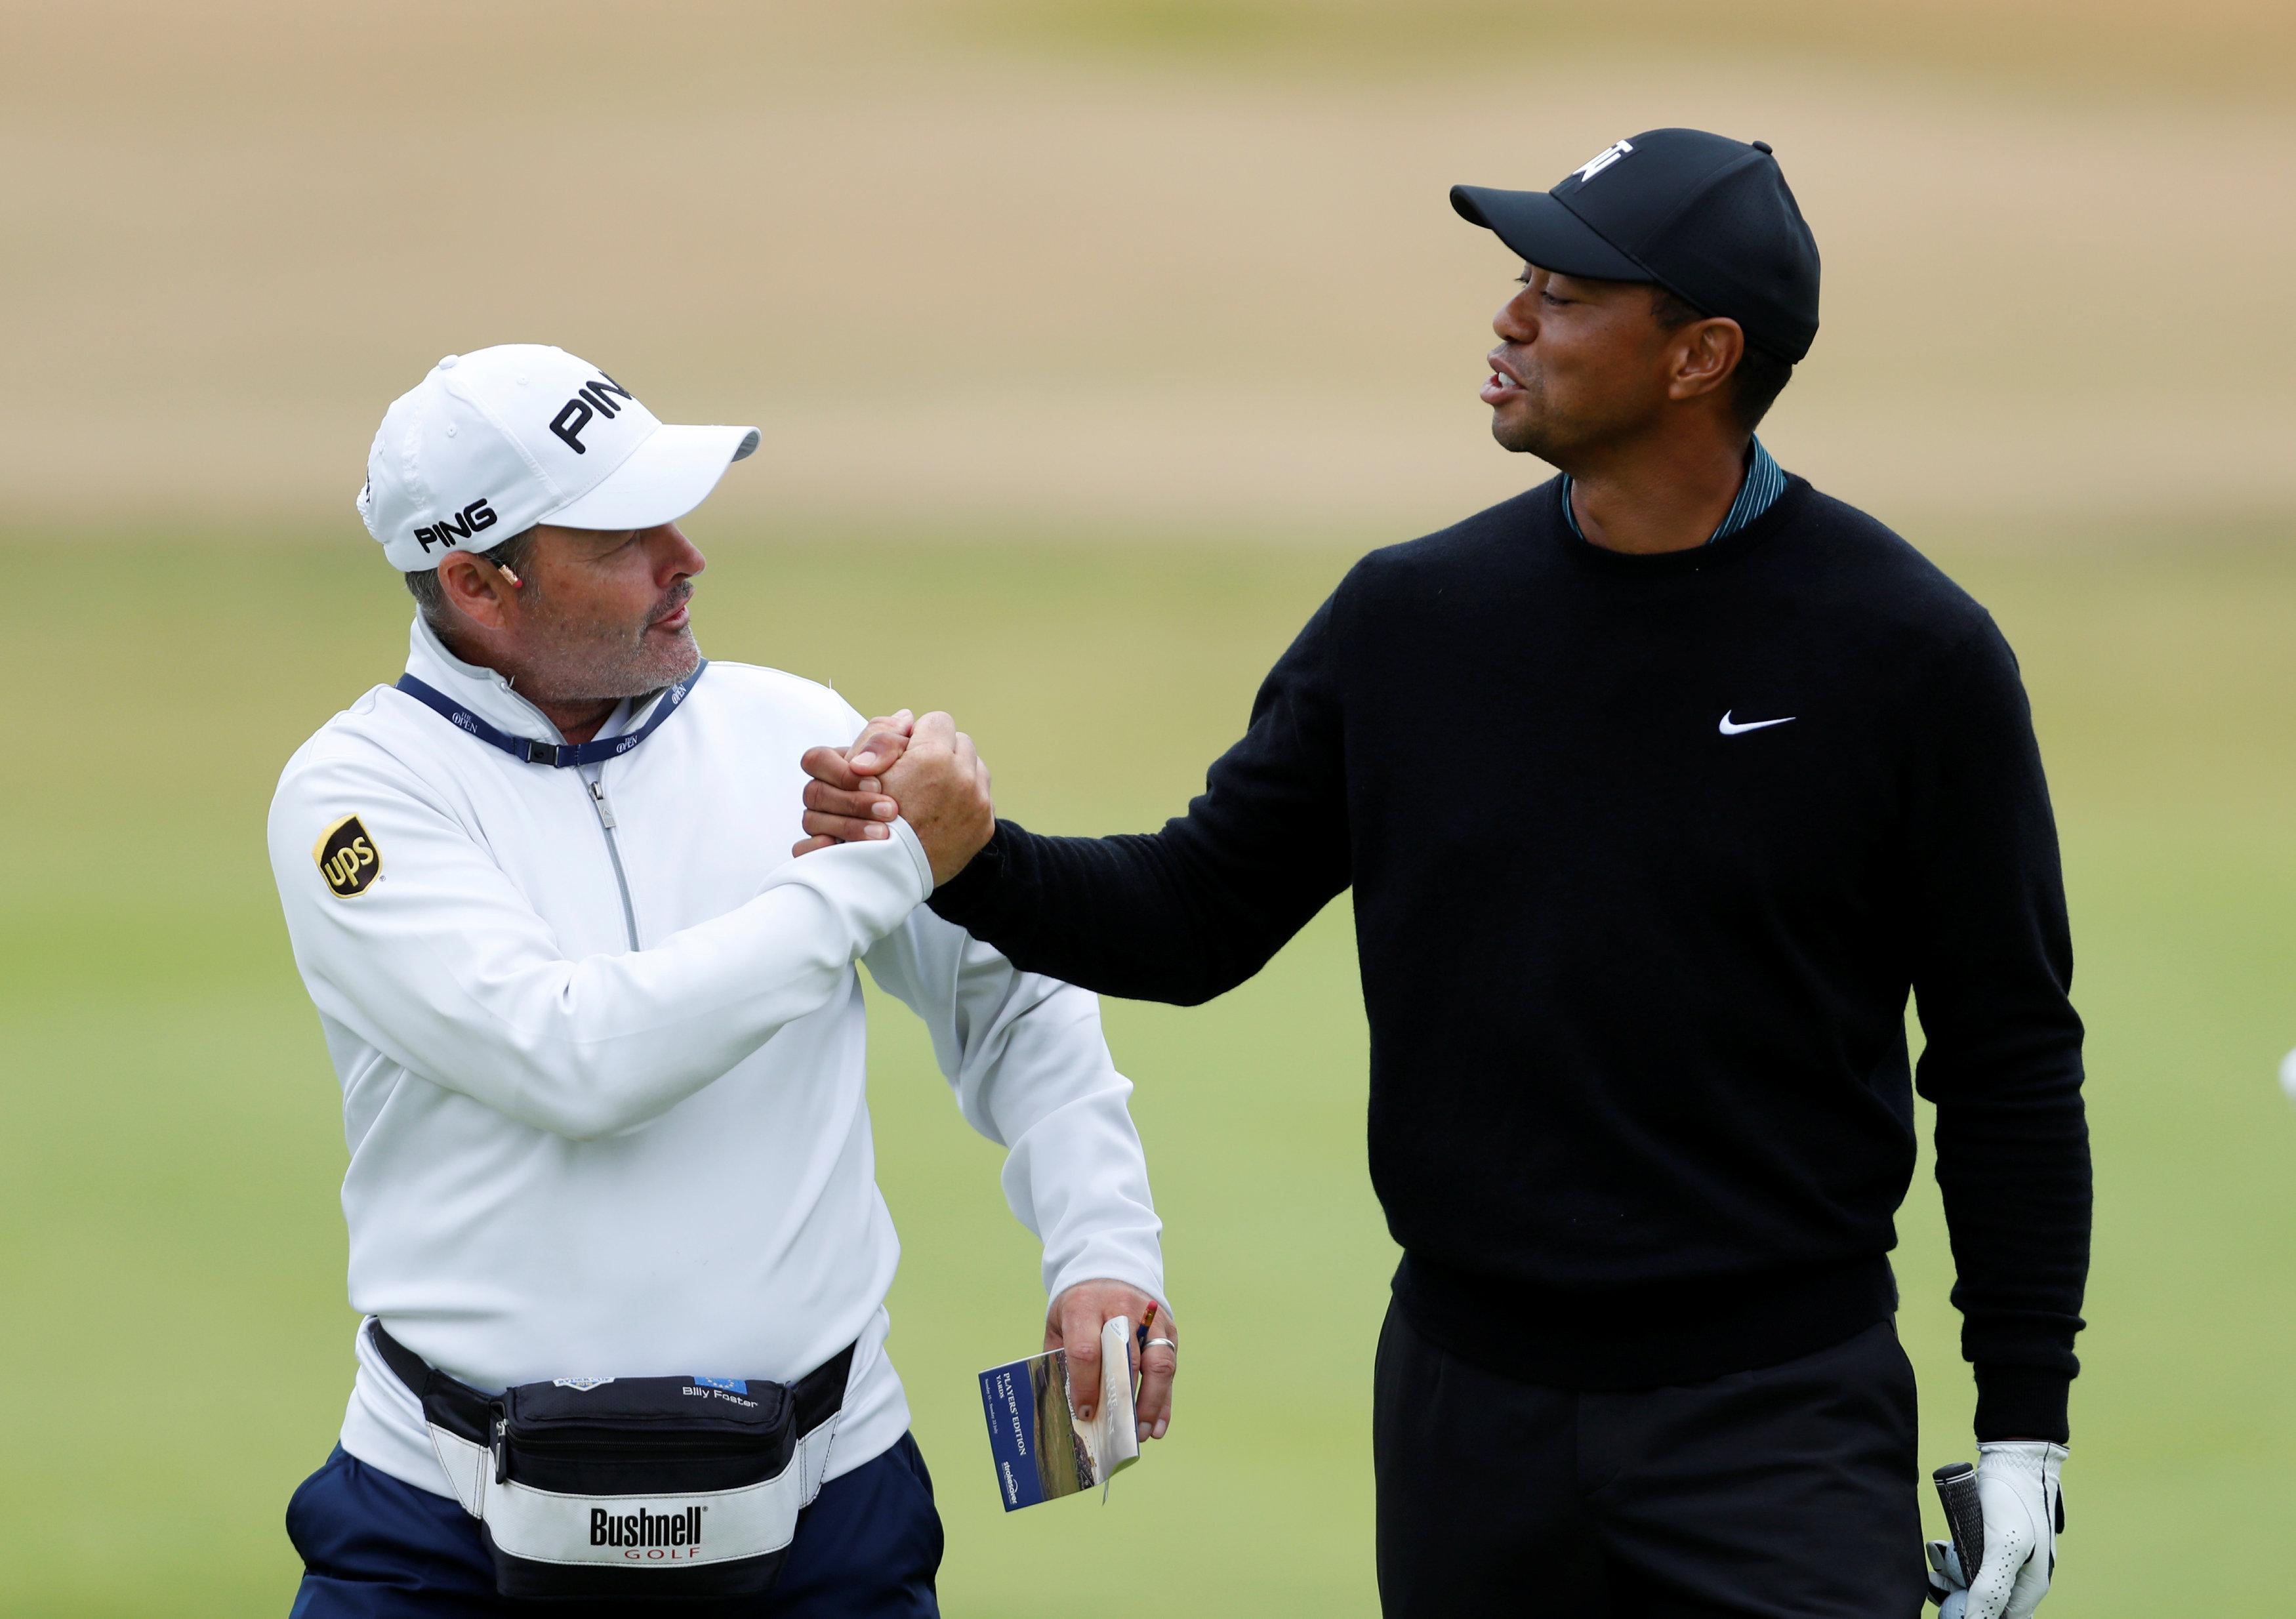 Woods was in good spirits with caddie Billy Foster in the practice rounds on Monday